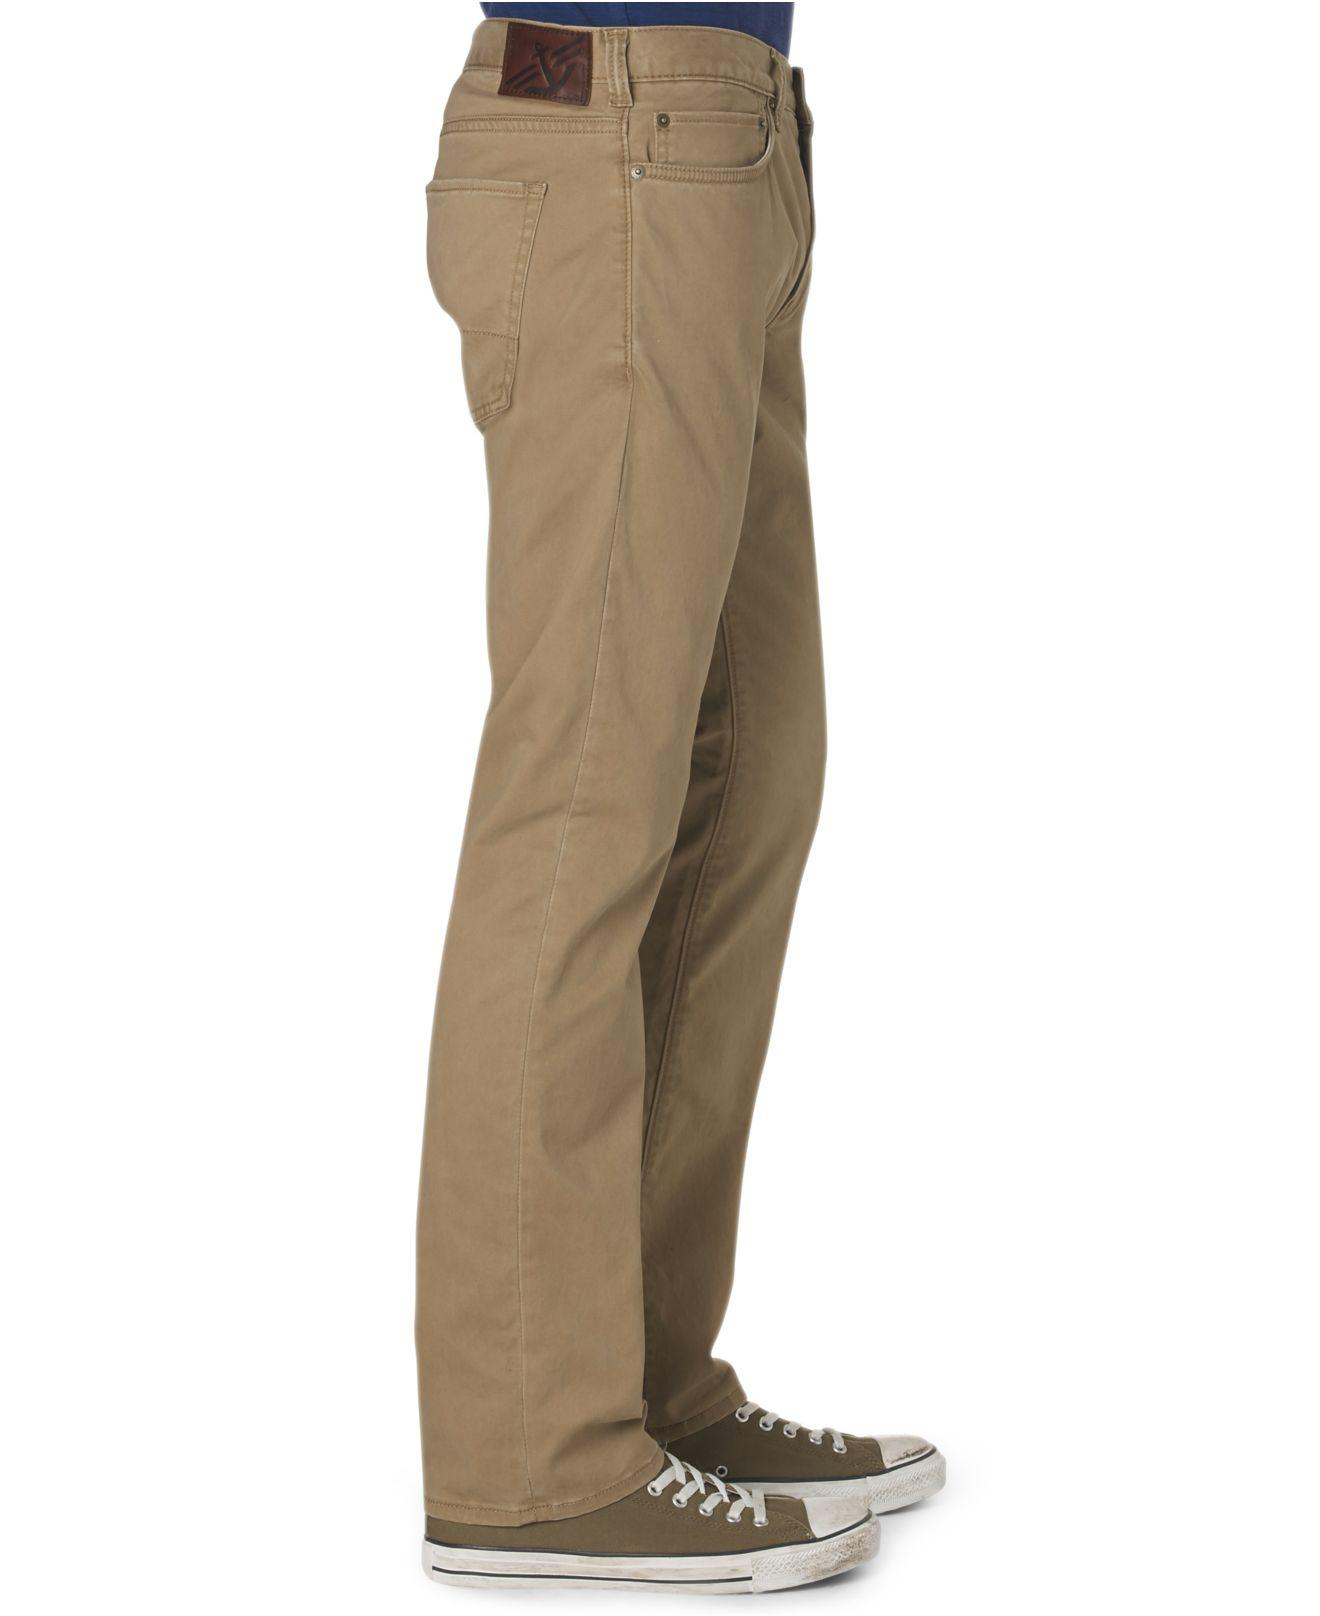 hot-selling newest top-rated quality nice cheap Dockers Natural Men's Big & Tall Straight-fit Jean-cut Stretch Khaki Pants  for men